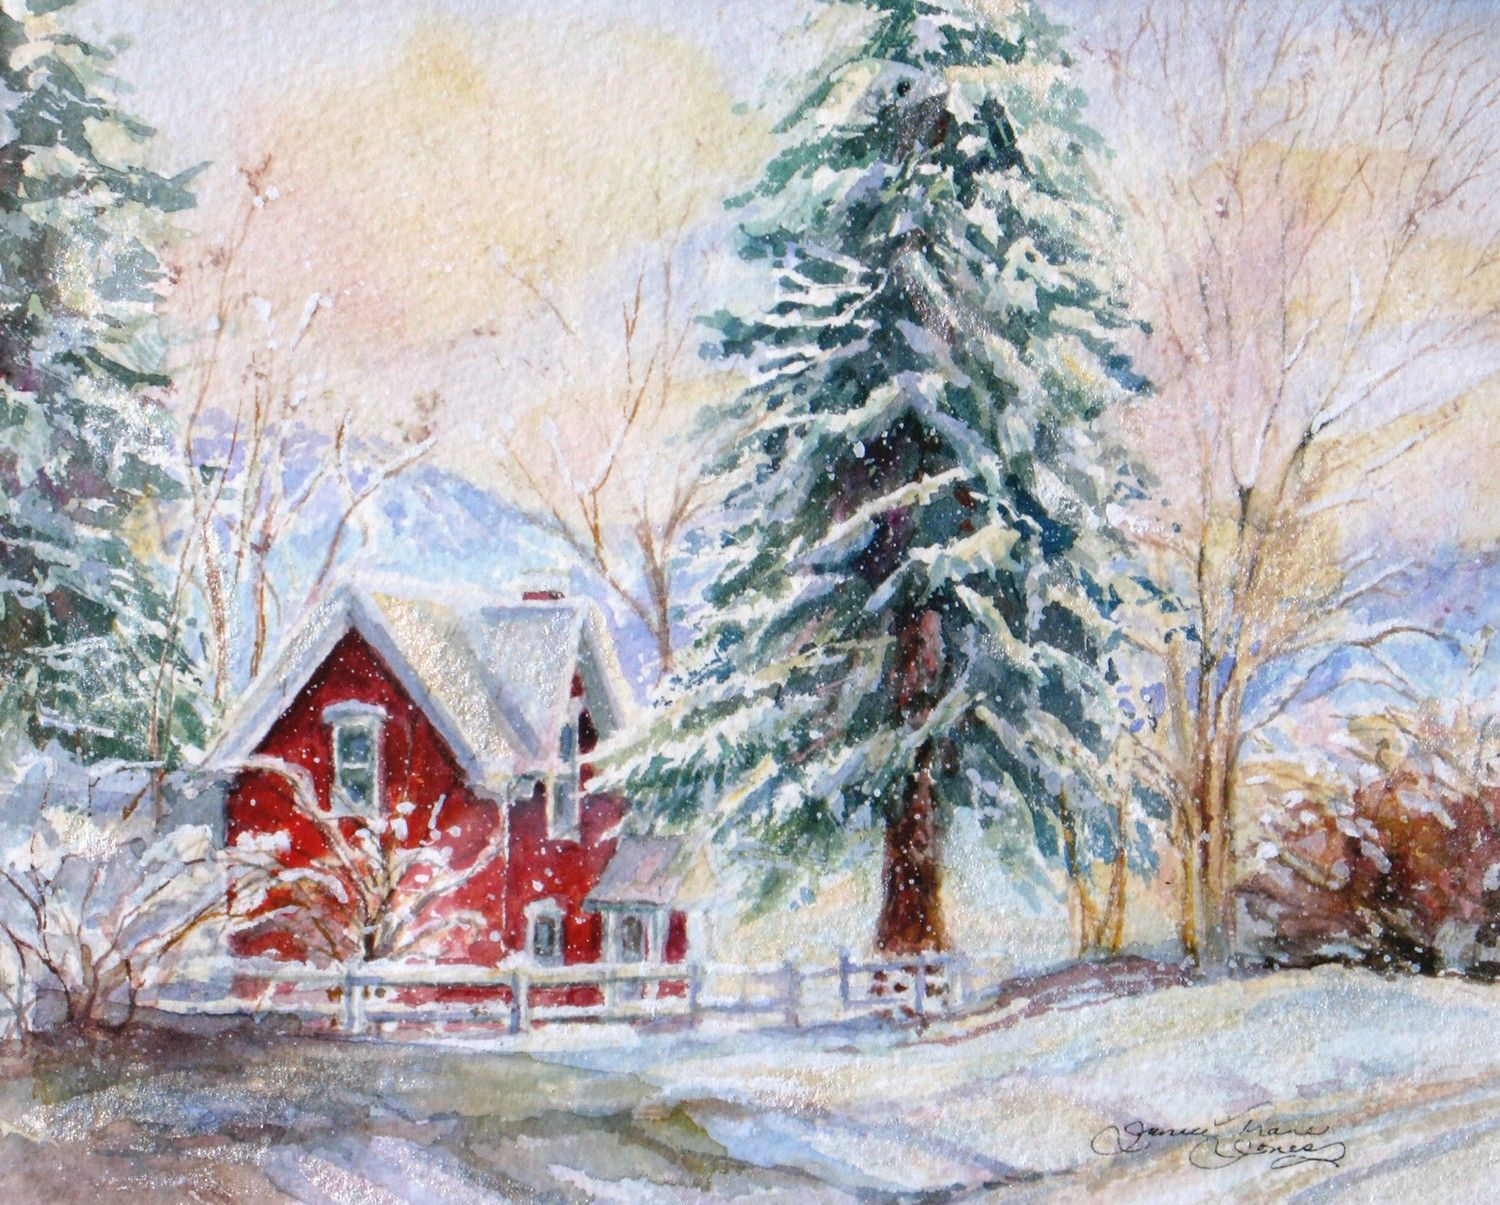 Christmas house with snow art - Winter Snow Signed Giclee Print Watercolor Snow Painting Red Cottage Winter Landscape Print Wall Decor Janice Trane Jones Wall Decor